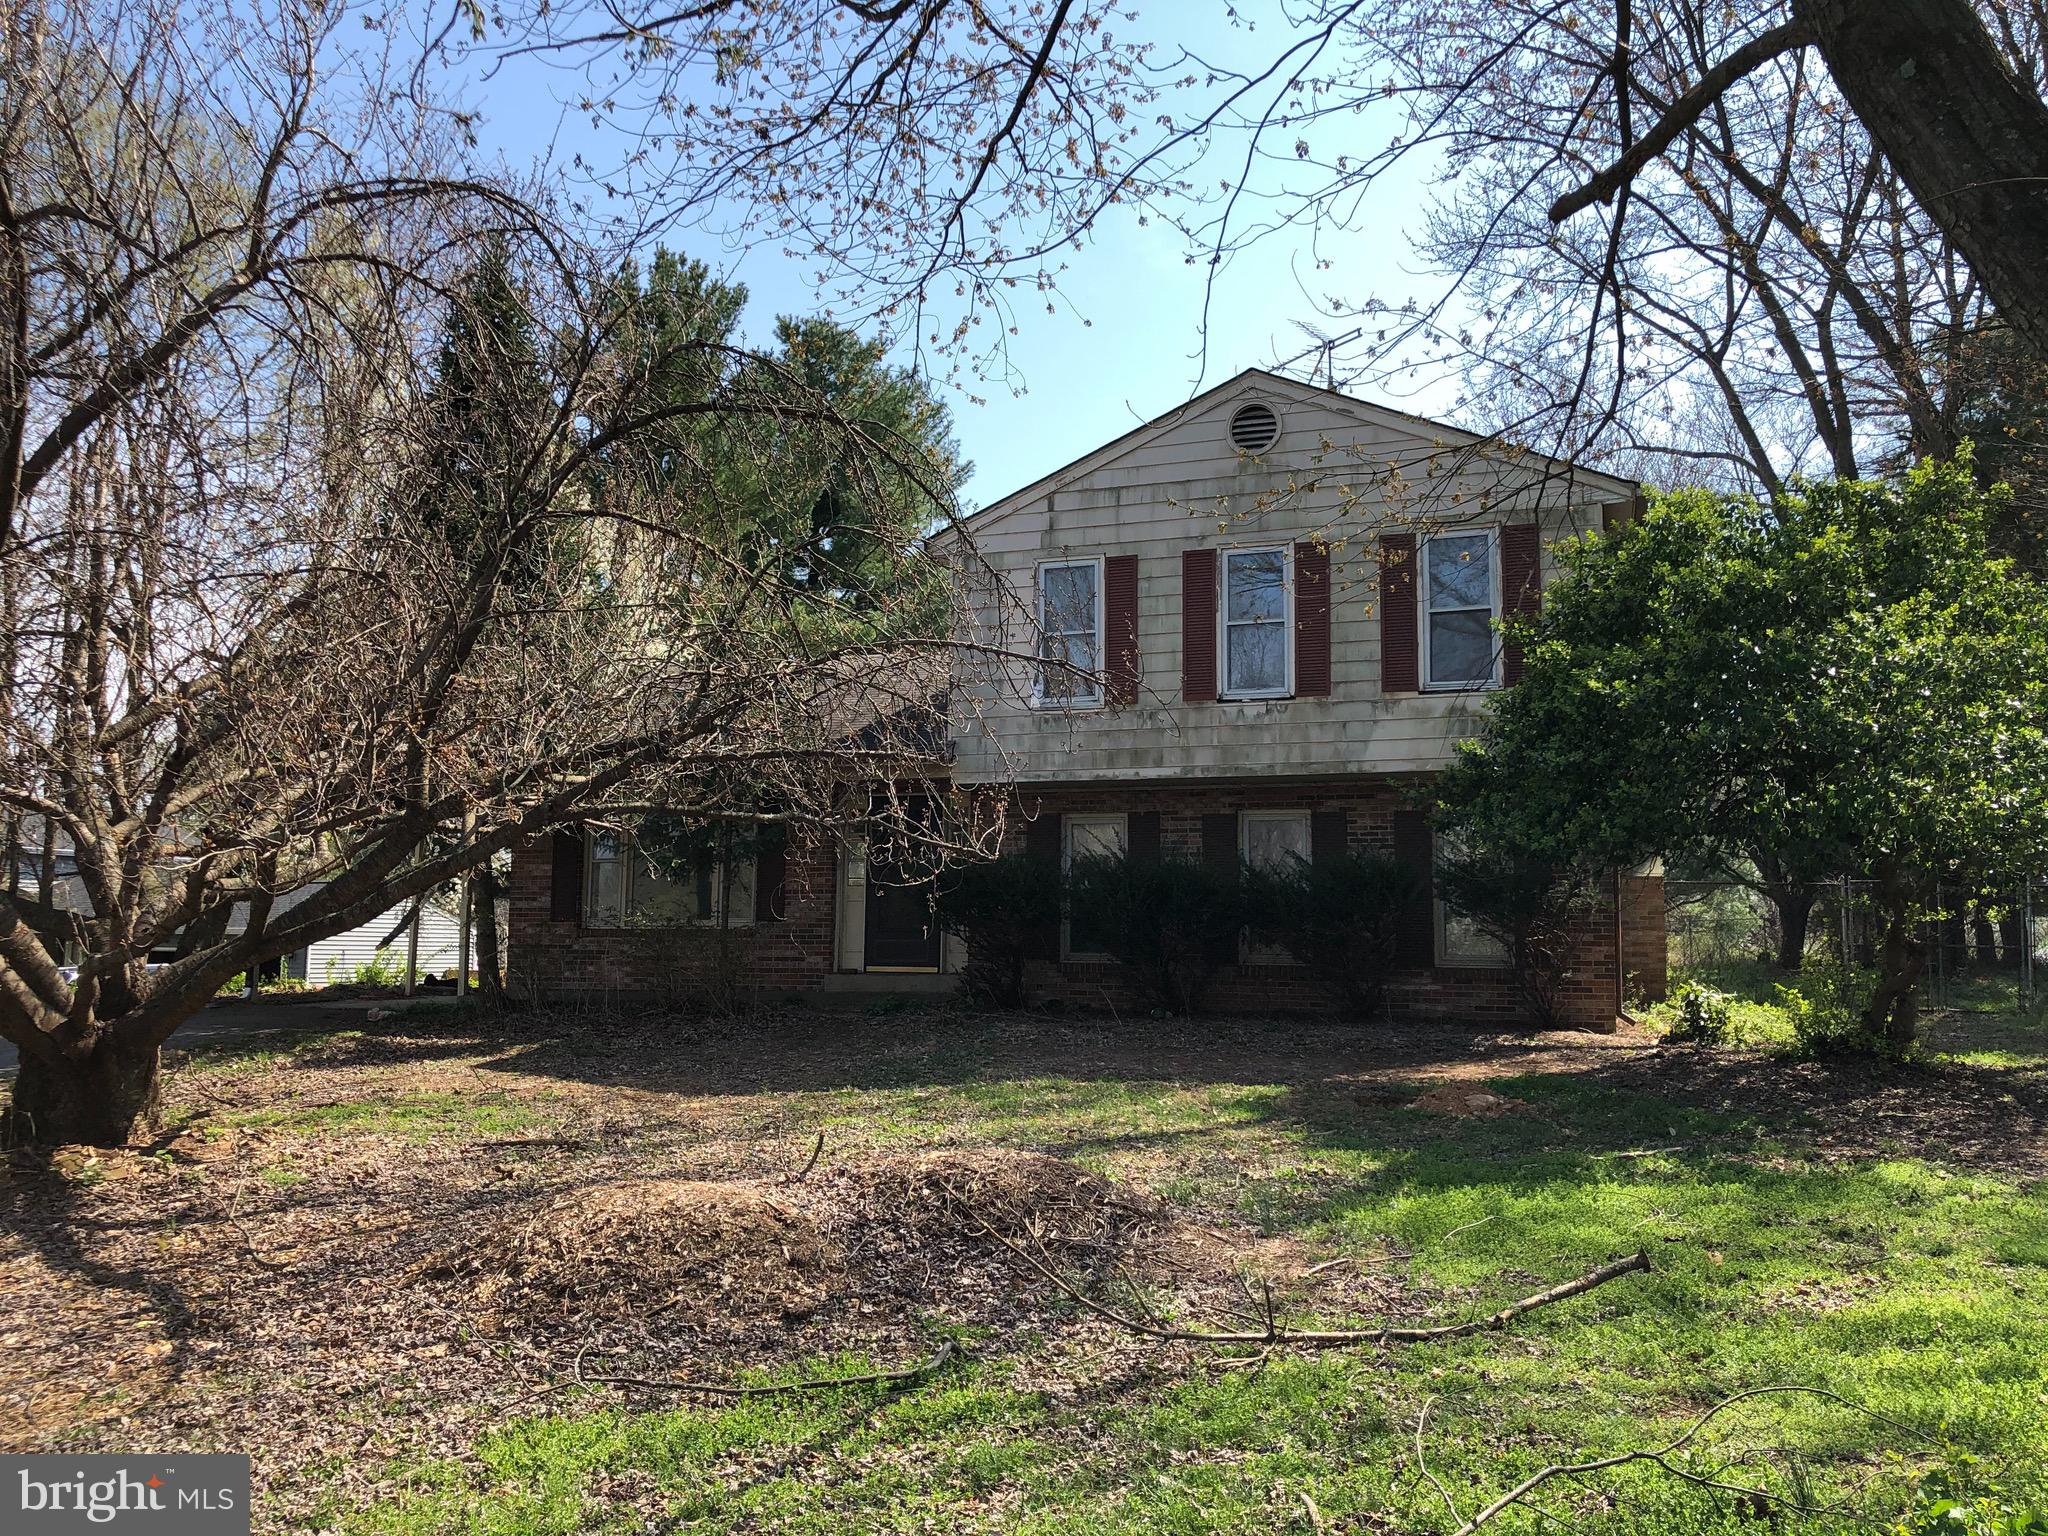 14001 Silver Fern Dr, Mount Airy, MD, 21771